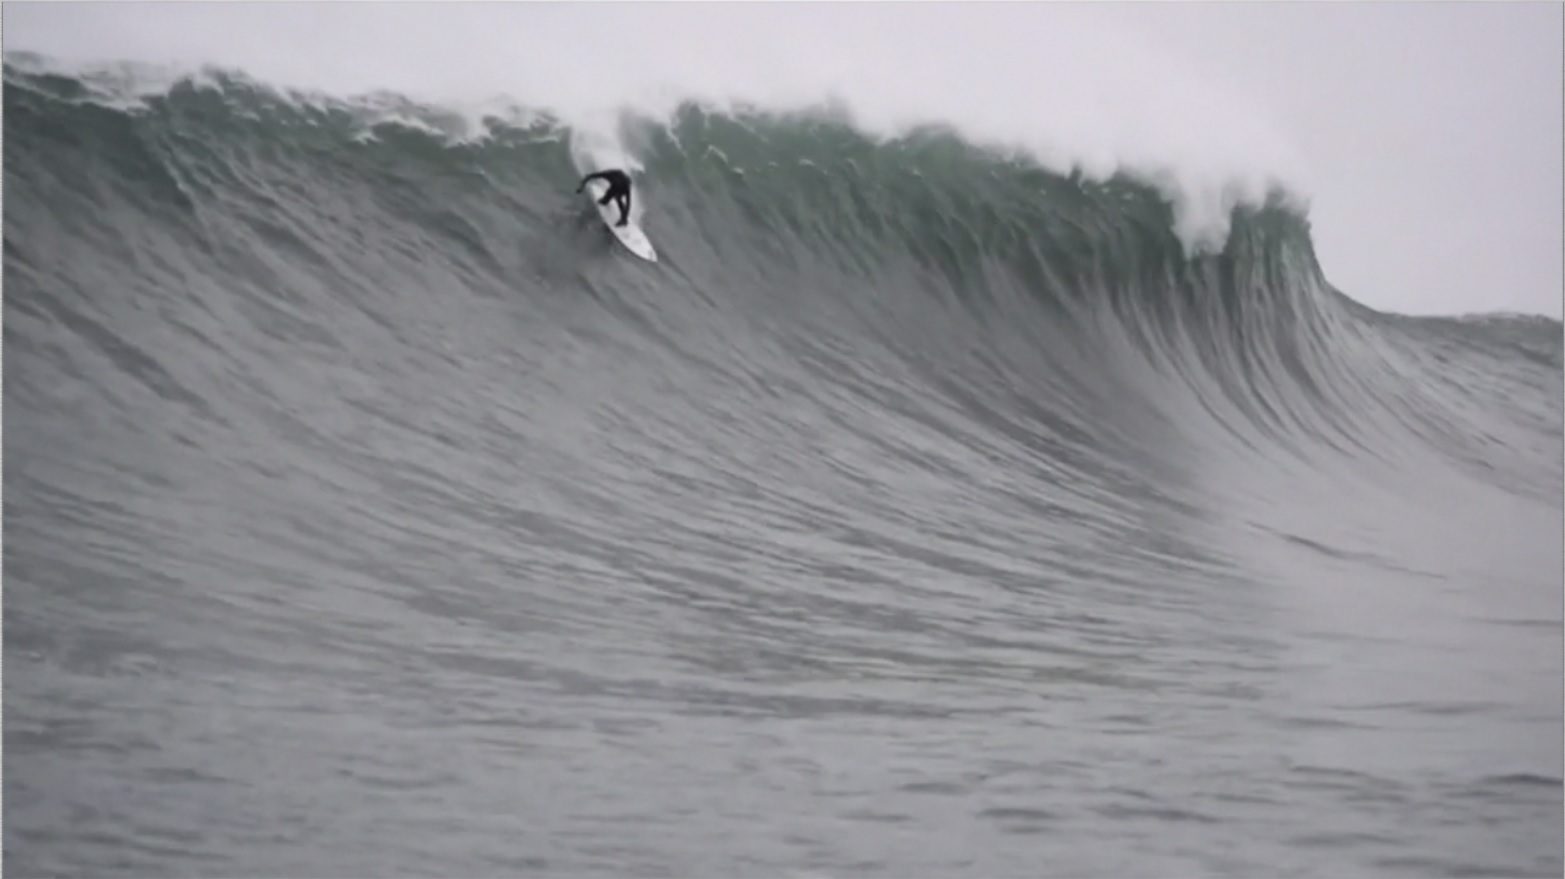 Nic Vaughan - Mavericks - December 10, 2014 - Photo Curt Meyers